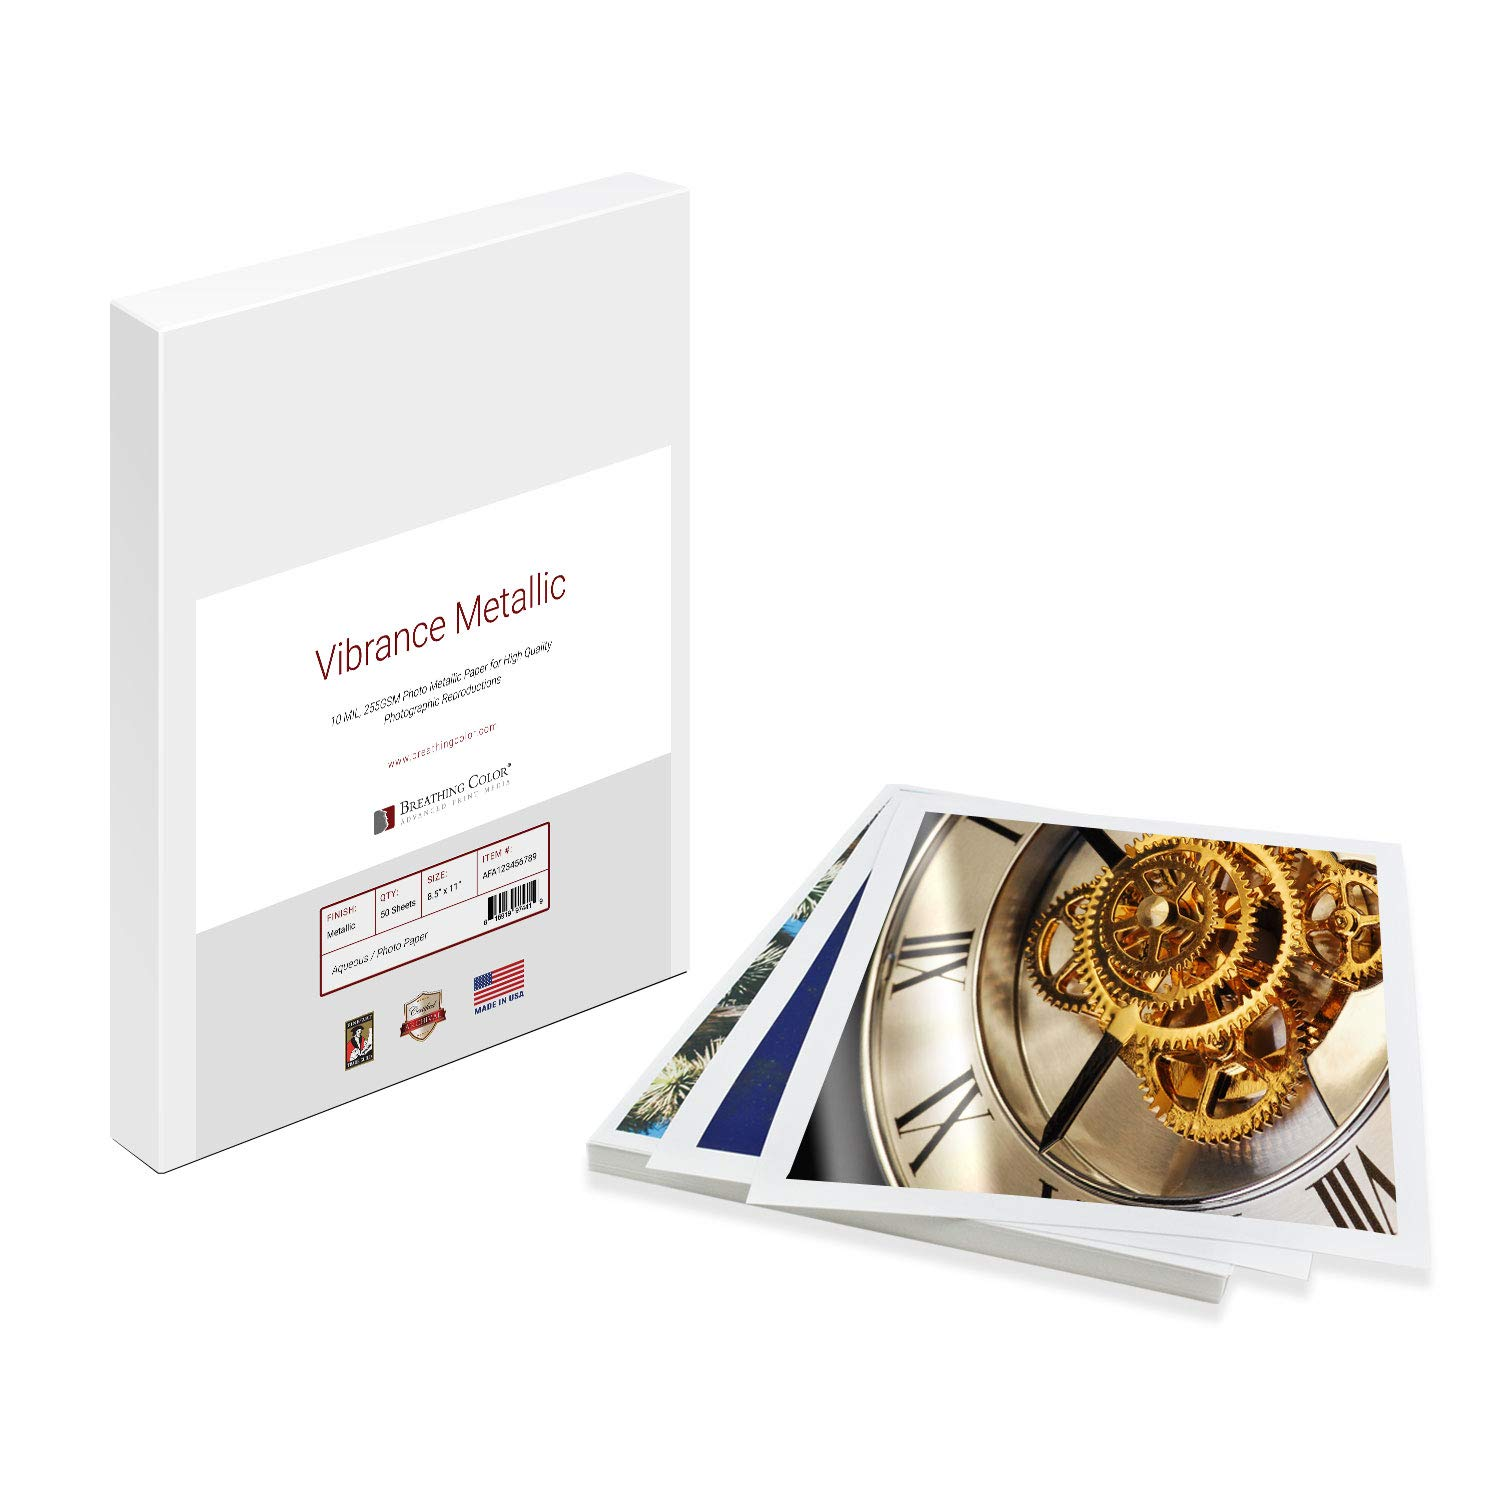 Vibrance Metallic Photo Printer Paper 10 mil 255 gsm Premium Photo Paper Sheets 13 x 19 inches 50 Sheets Works with All Inkjet Printers Including Professional Makes and Models Like Epson Canon HP